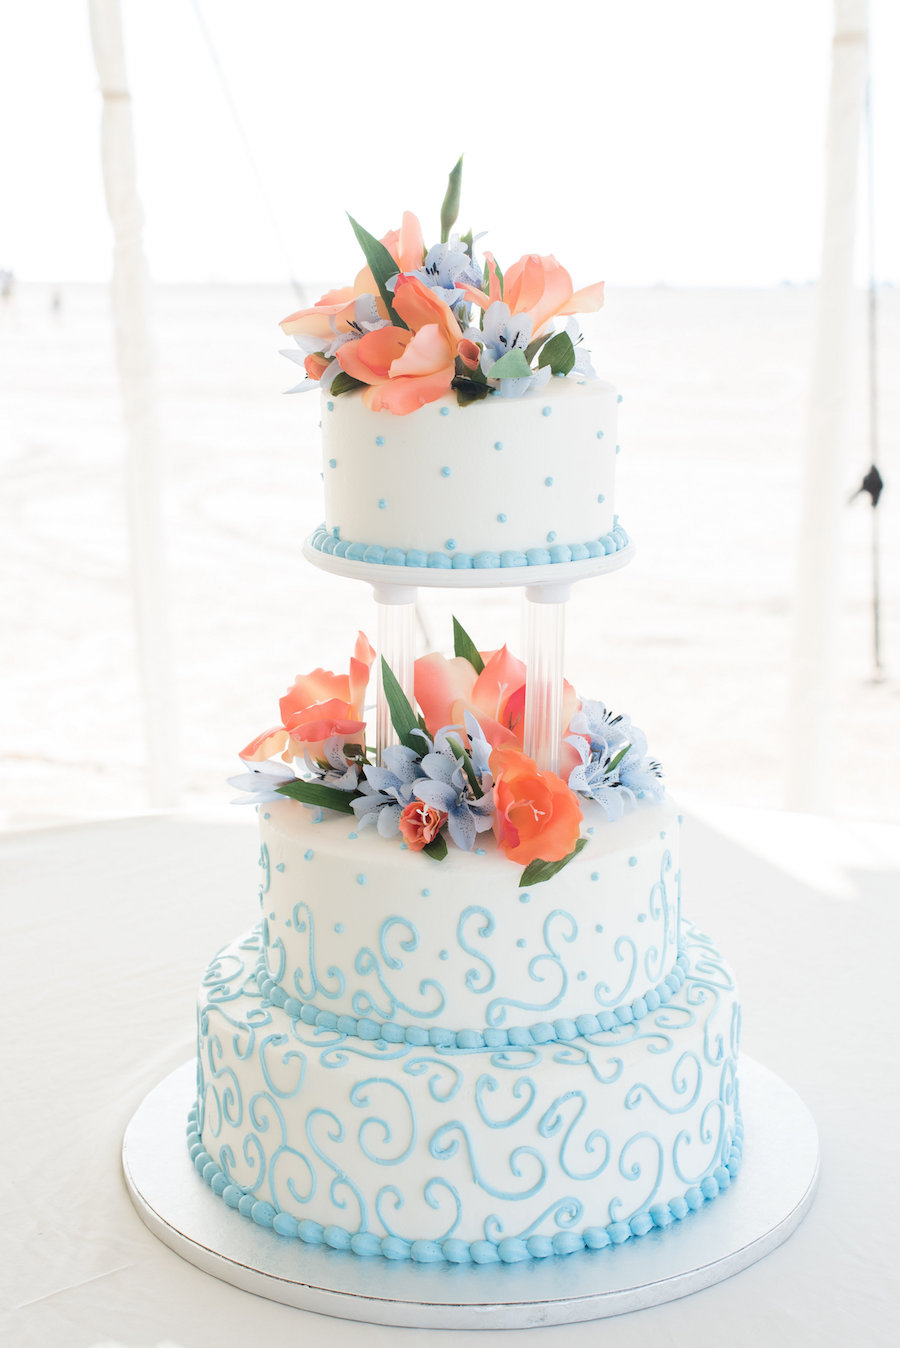 Light Blue and White Tiered Wedding cake with Coral and Light Blue Floral Accents  Clearwater Wedding Photographer Caroline and Evan Photography